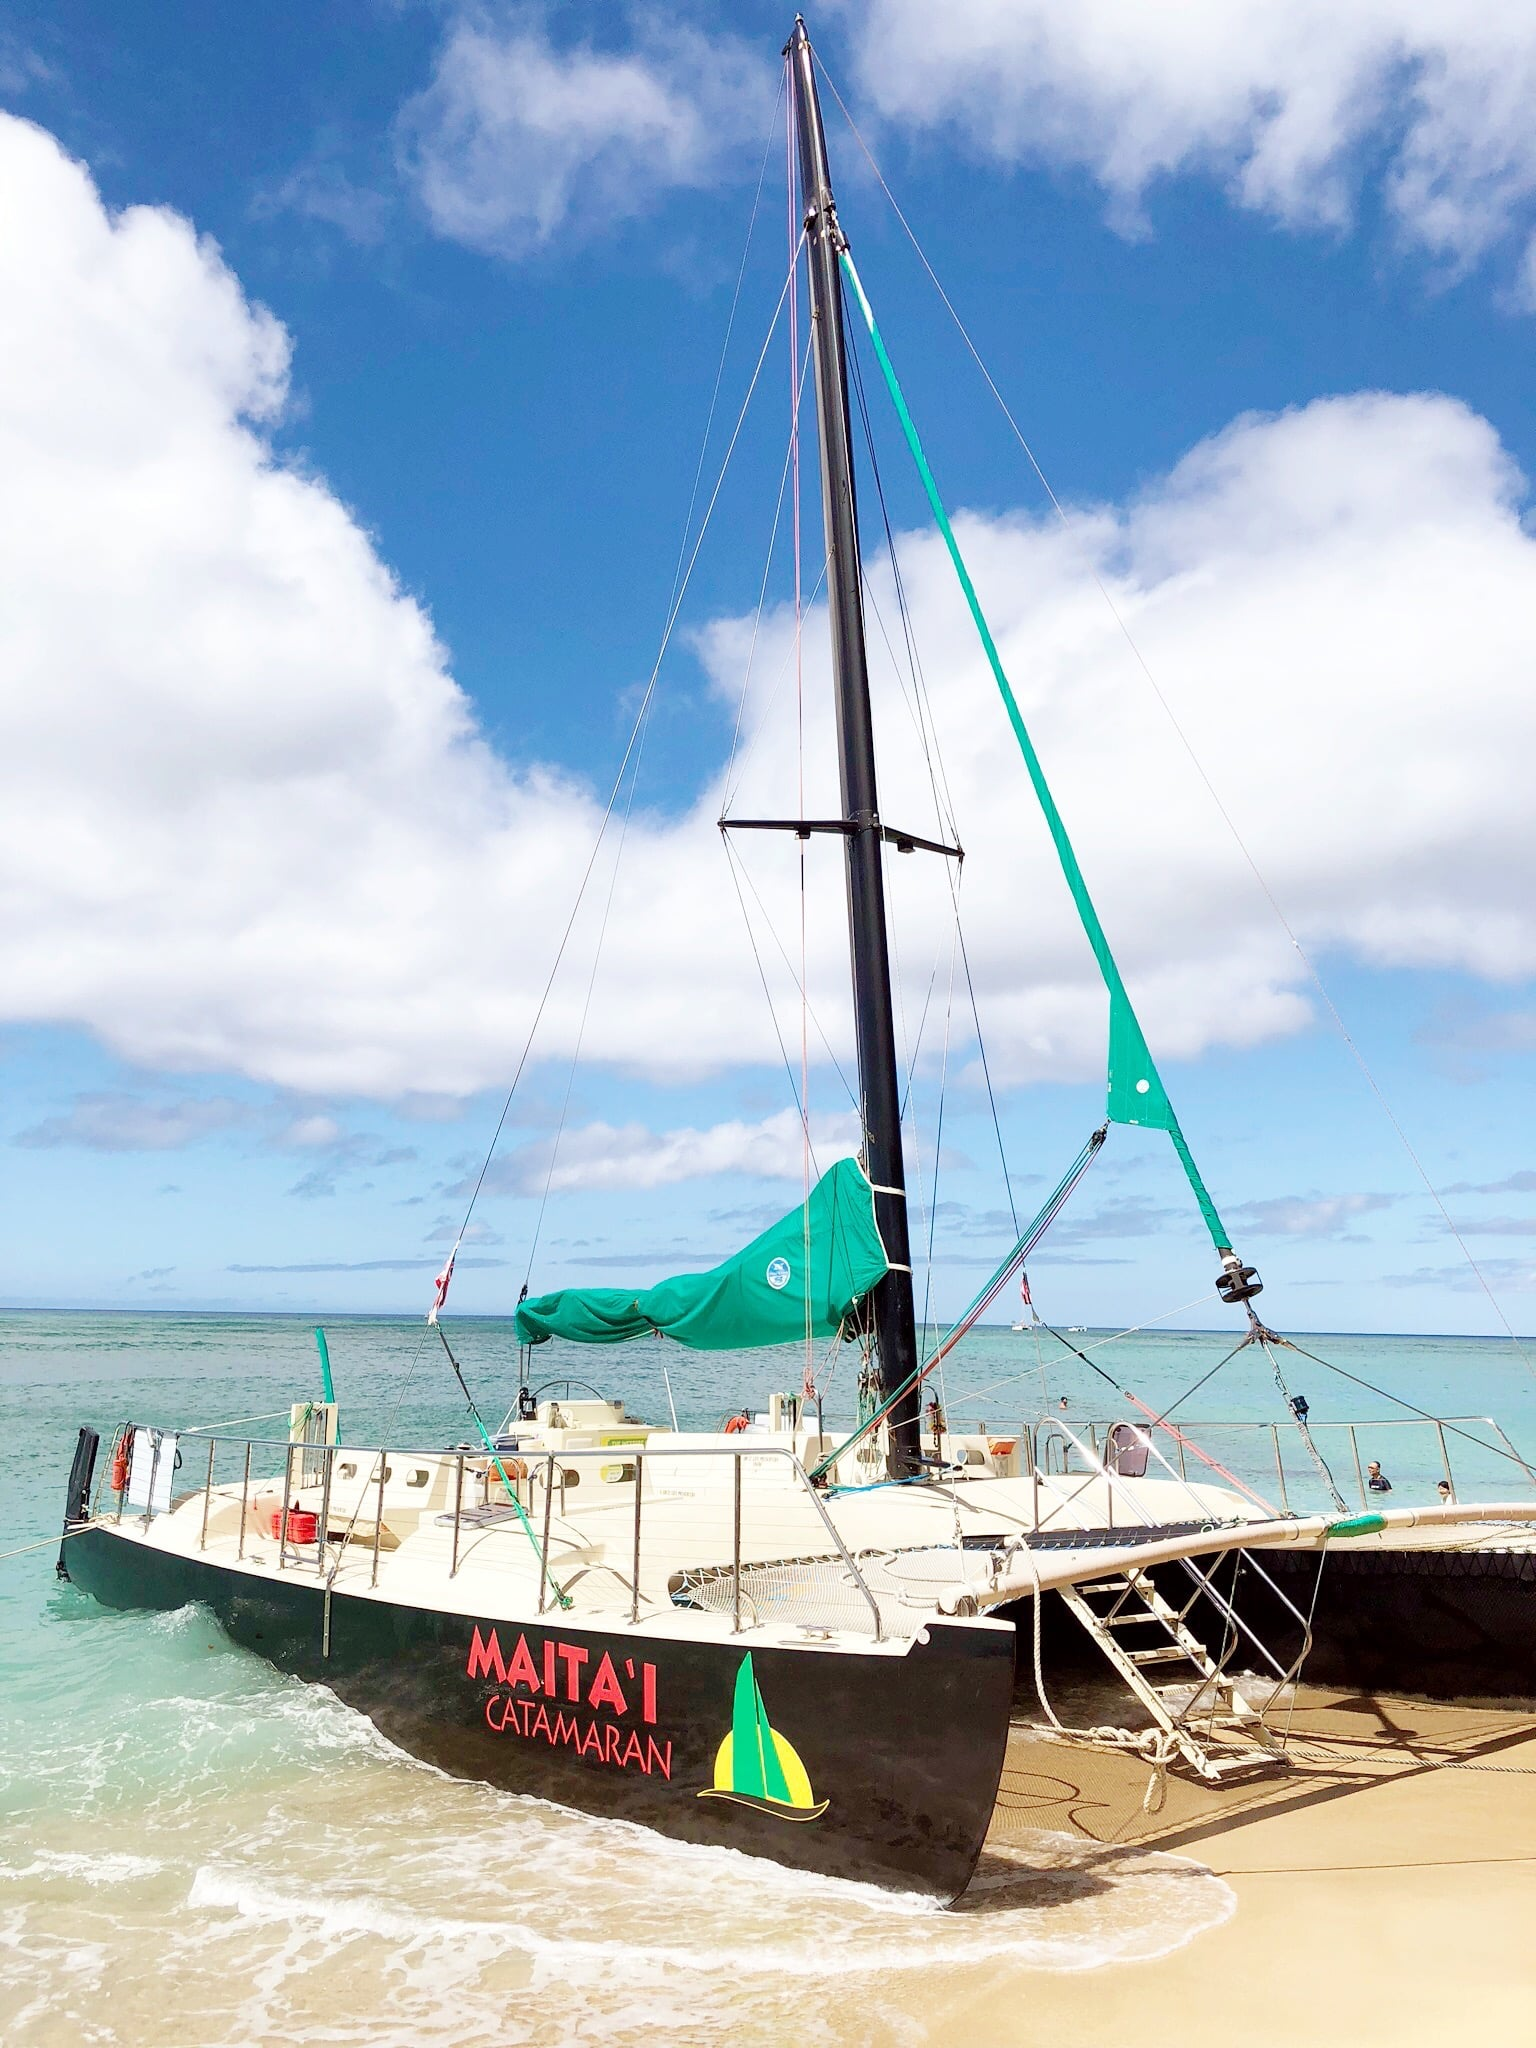 Mai Tai Catamaran In Honolulu - Catamaran on the shores of Waikiki Beach